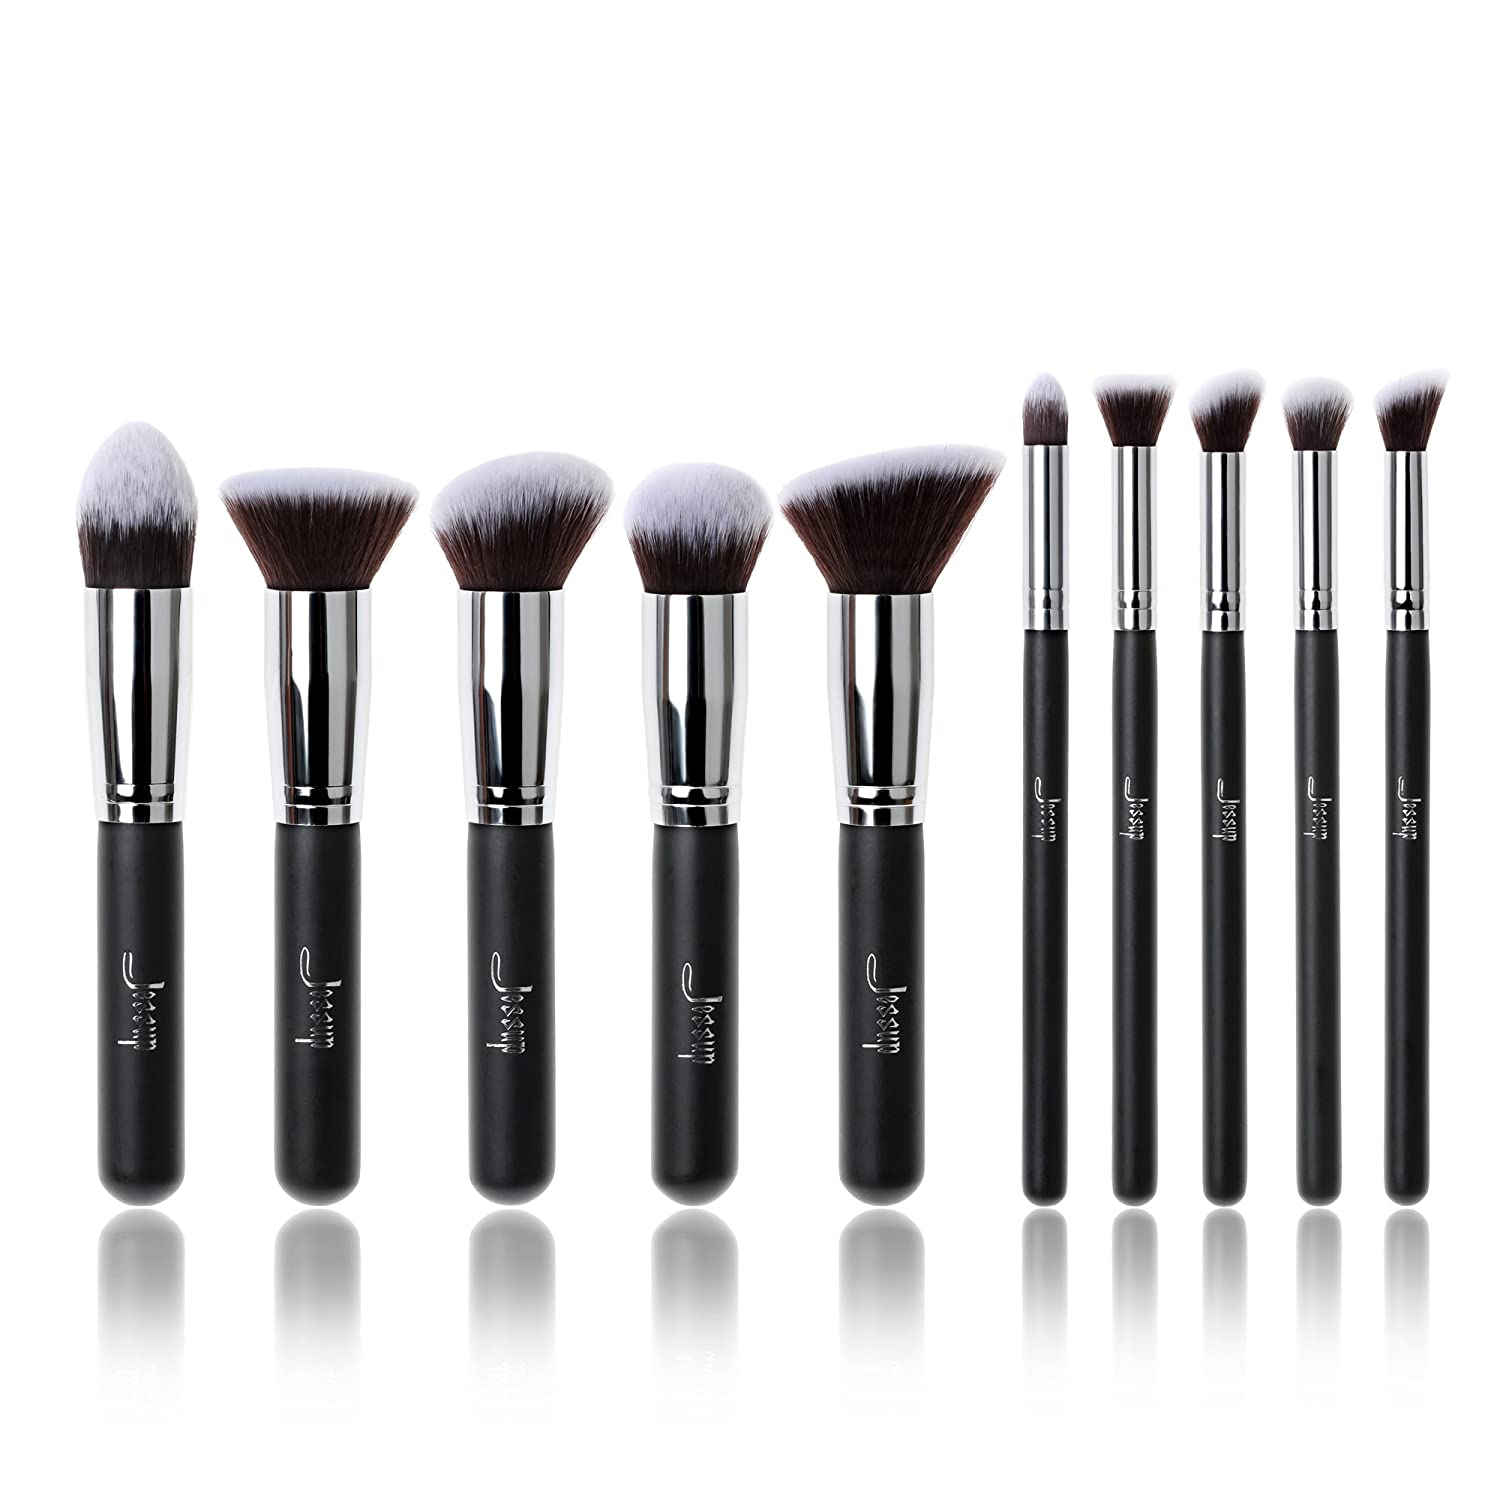 Jessup 10pcs Black/Silver Professional Liquid Kabuki Brush Foundation, Blush Brush,Blending Powder,Eyeliner,Eyeshadow Brush,Concealer,Make Up Tools Mankalun